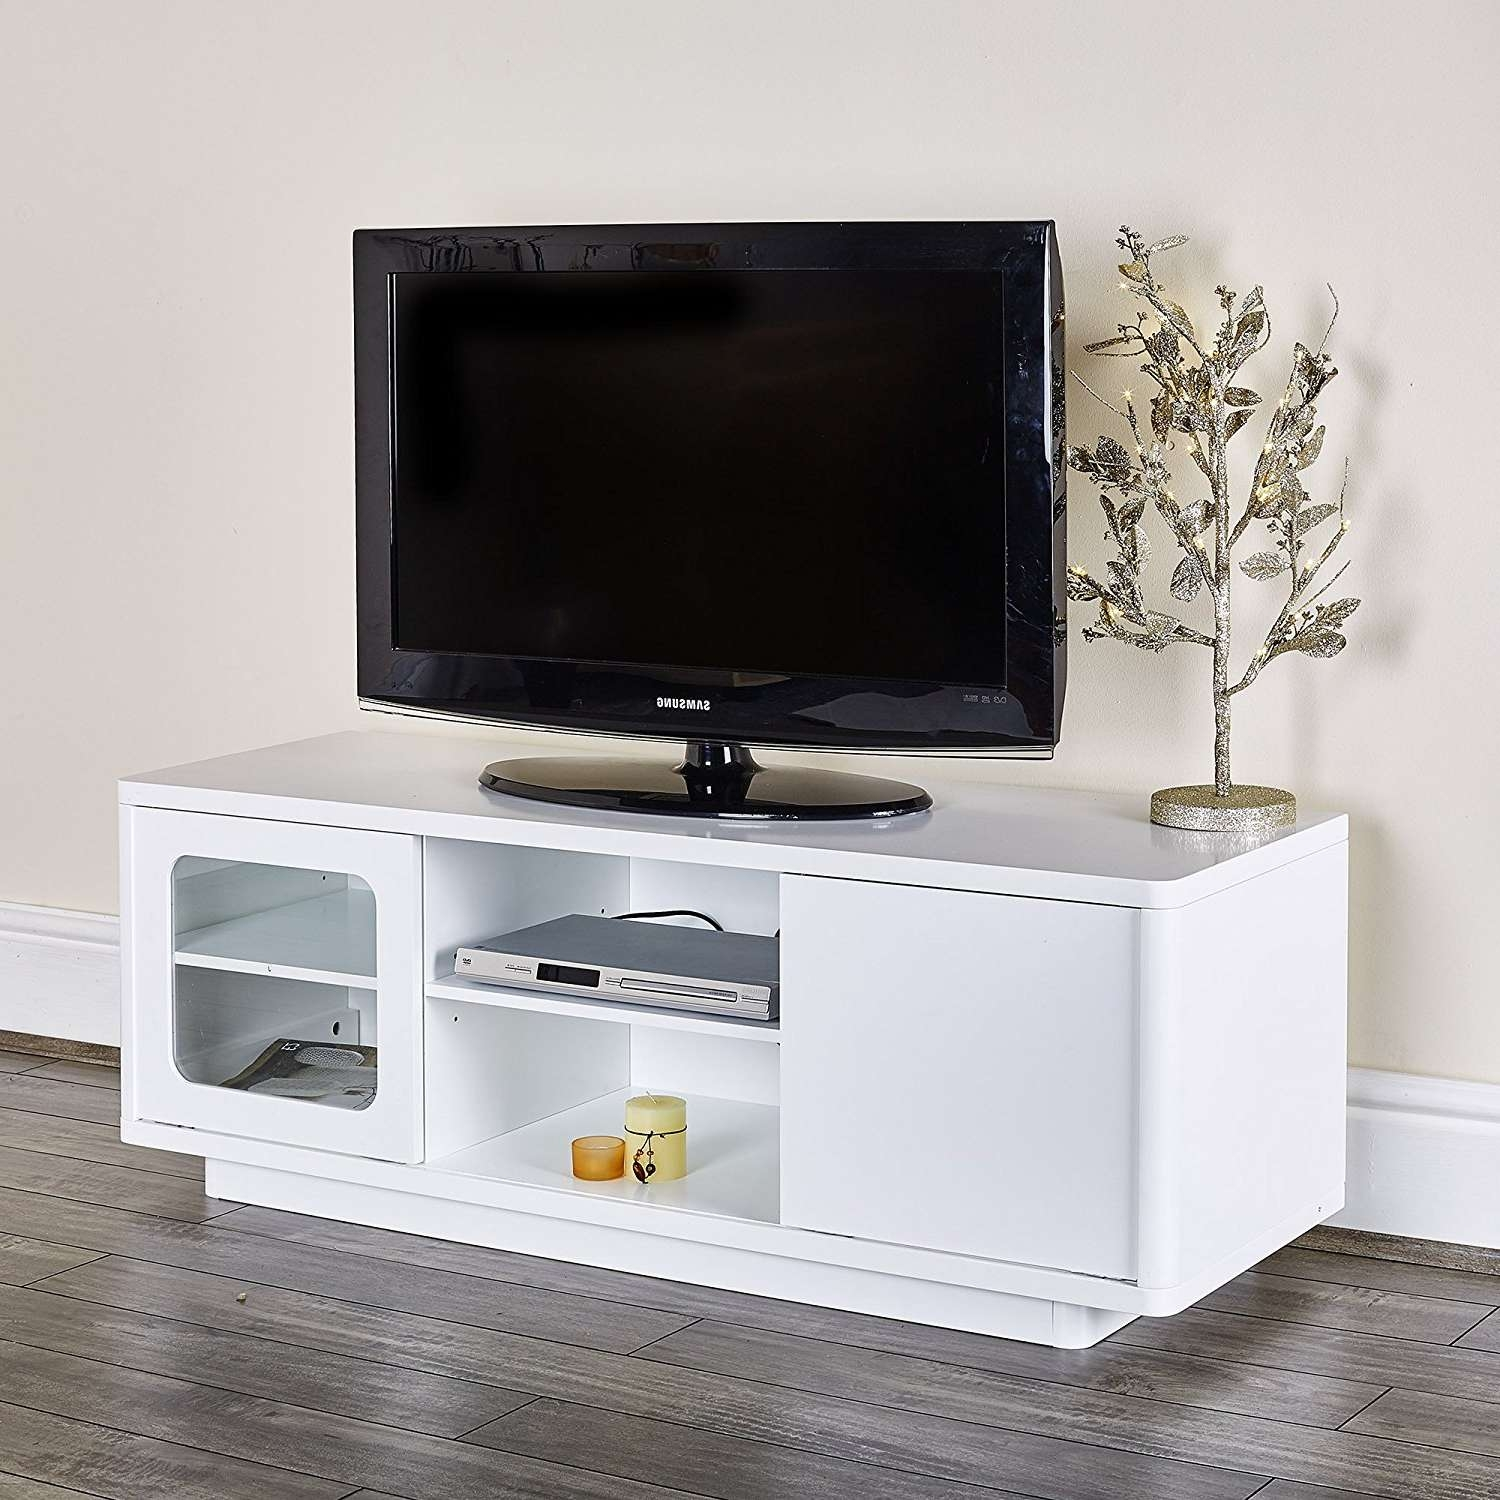 Charming Ideas White Tv Cabinet Tv Units Stands Cabinets Pertaining To Tv Stands And Cabinets (View 2 of 15)